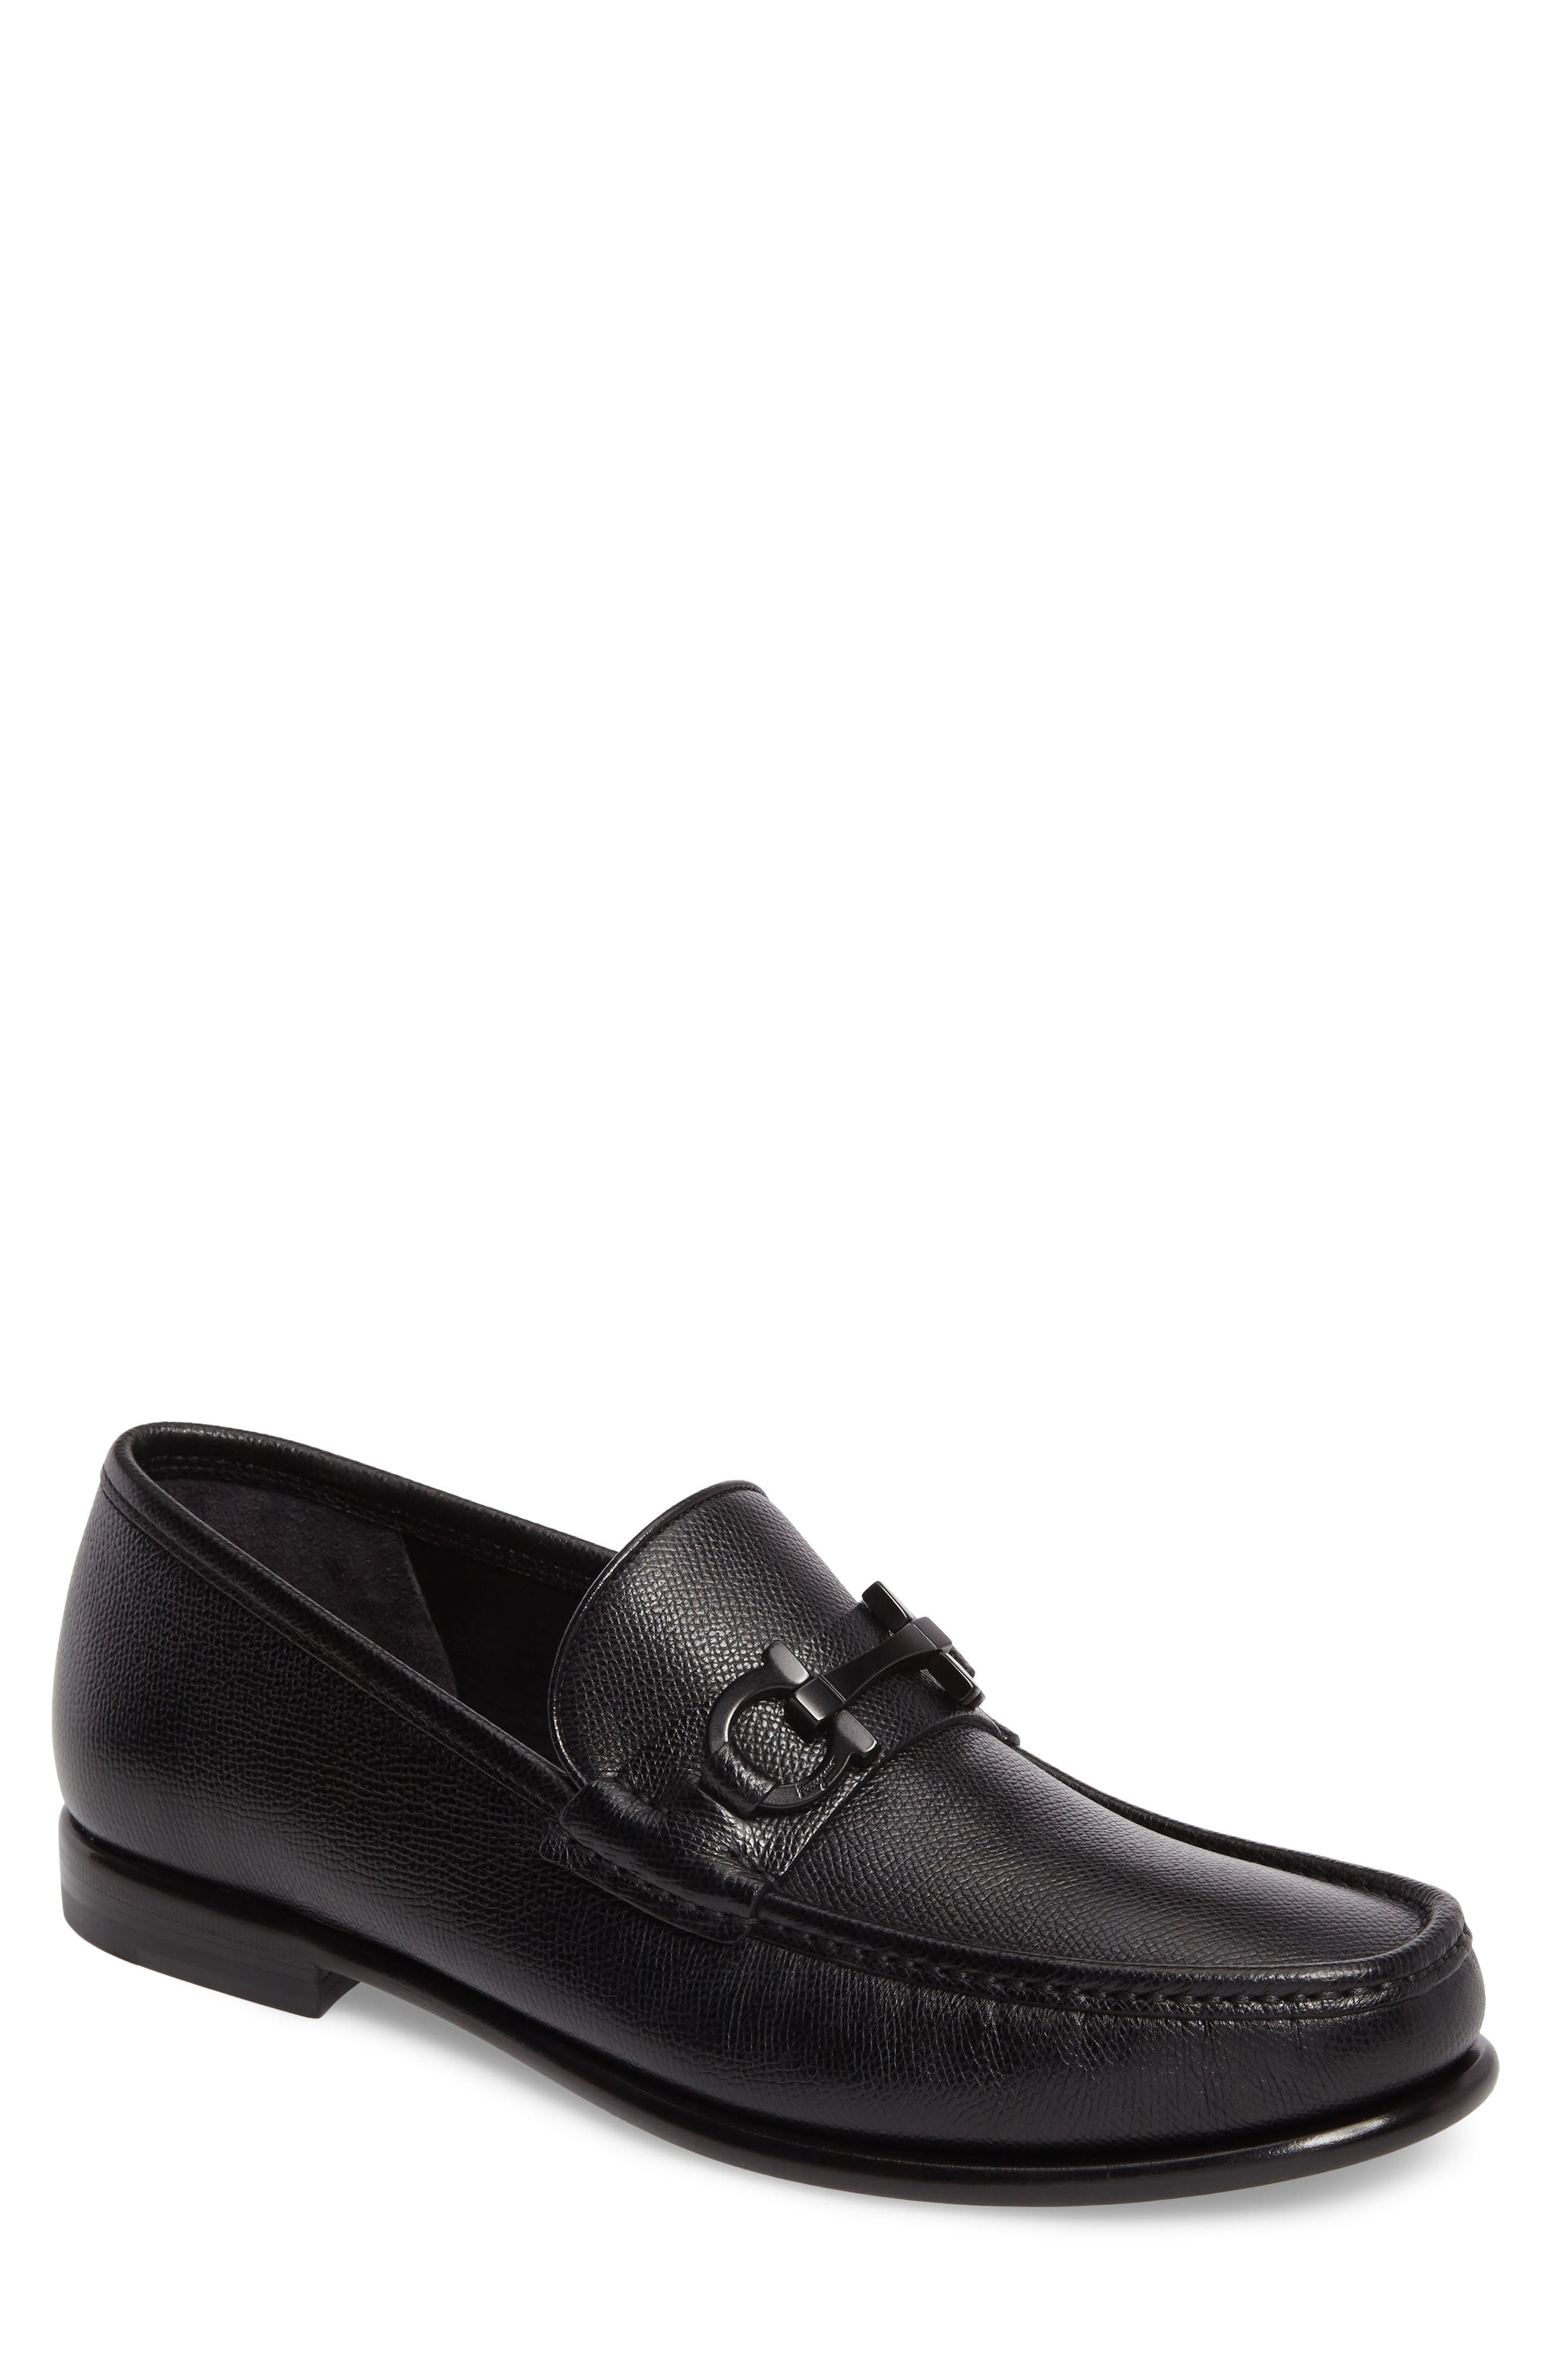 Crown Bit Loafer,                         Main,                         color, Nero